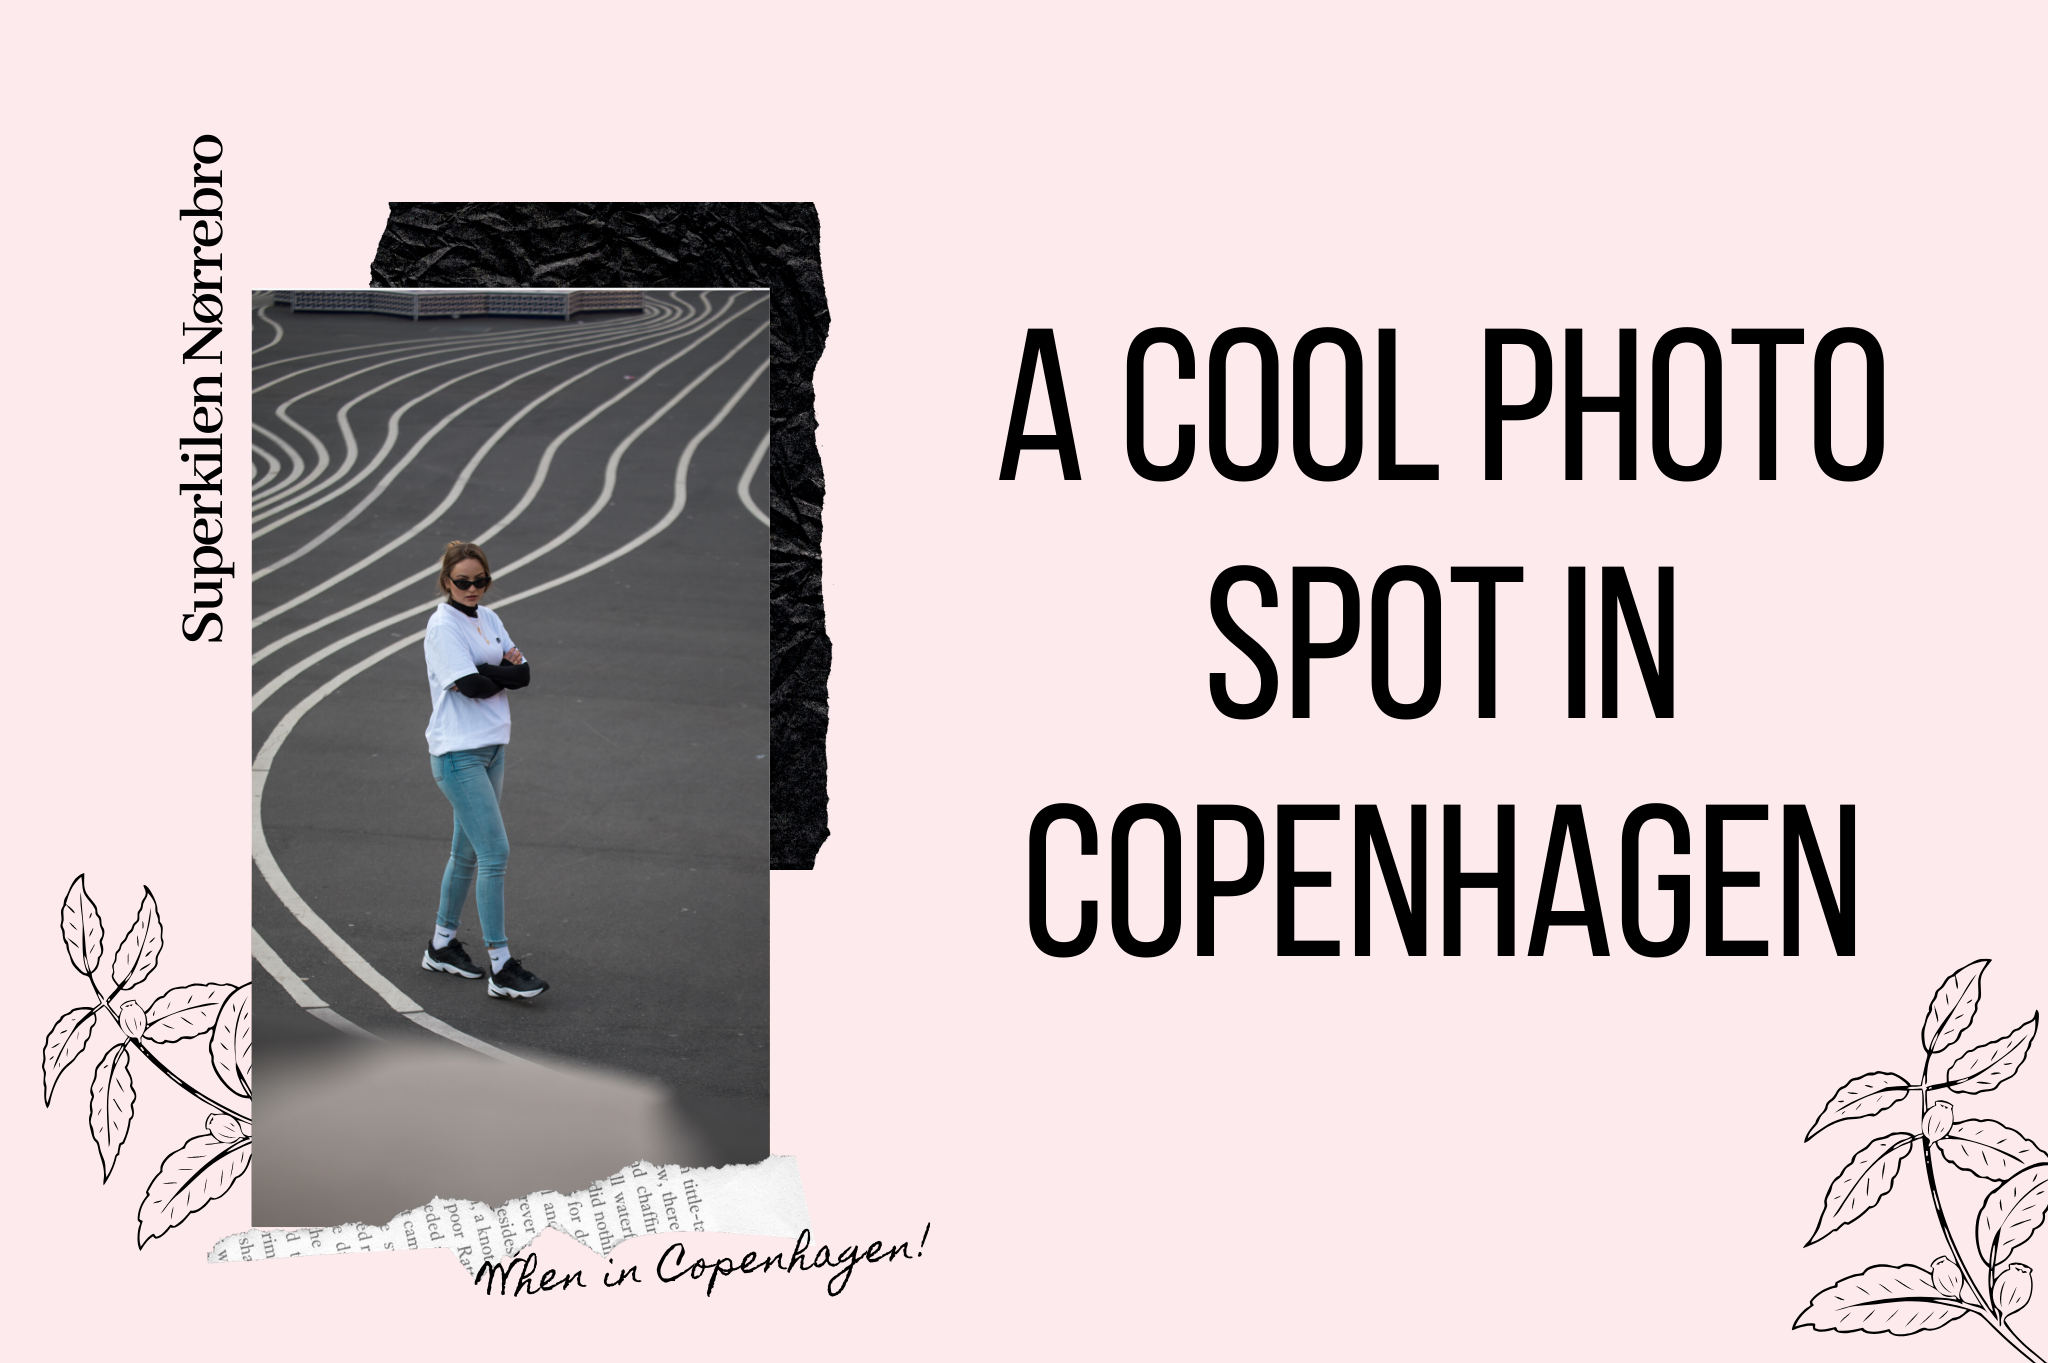 Superkilen Copenhagen place with stripes cool photo spot in Copenhagen